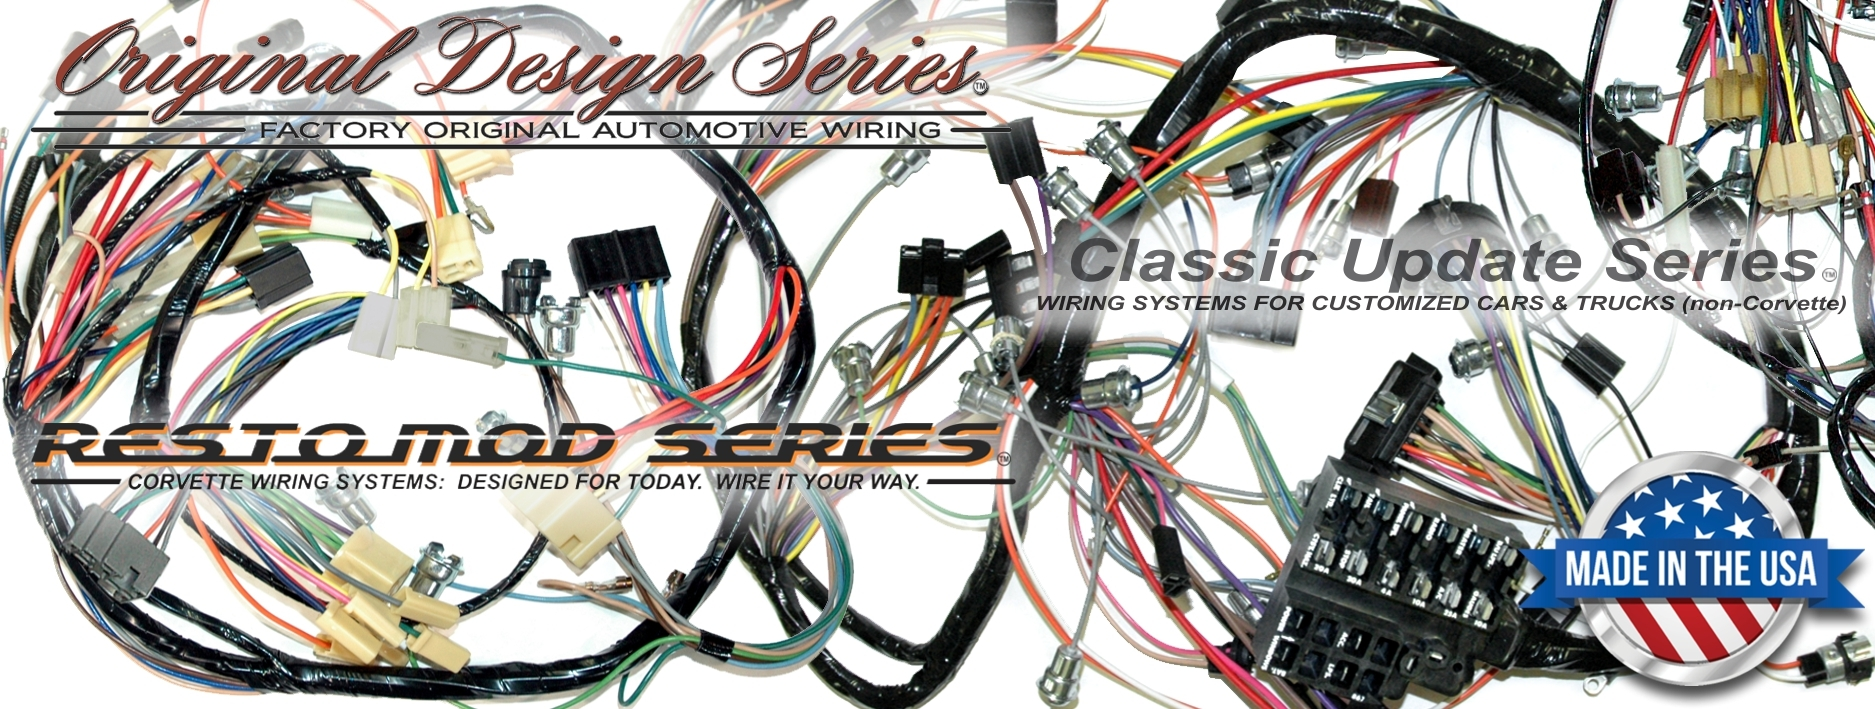 Aftermarket Engine Wiring Harness Guide And Troubleshooting Of Haywire Street Rod Diagram Images Gallery